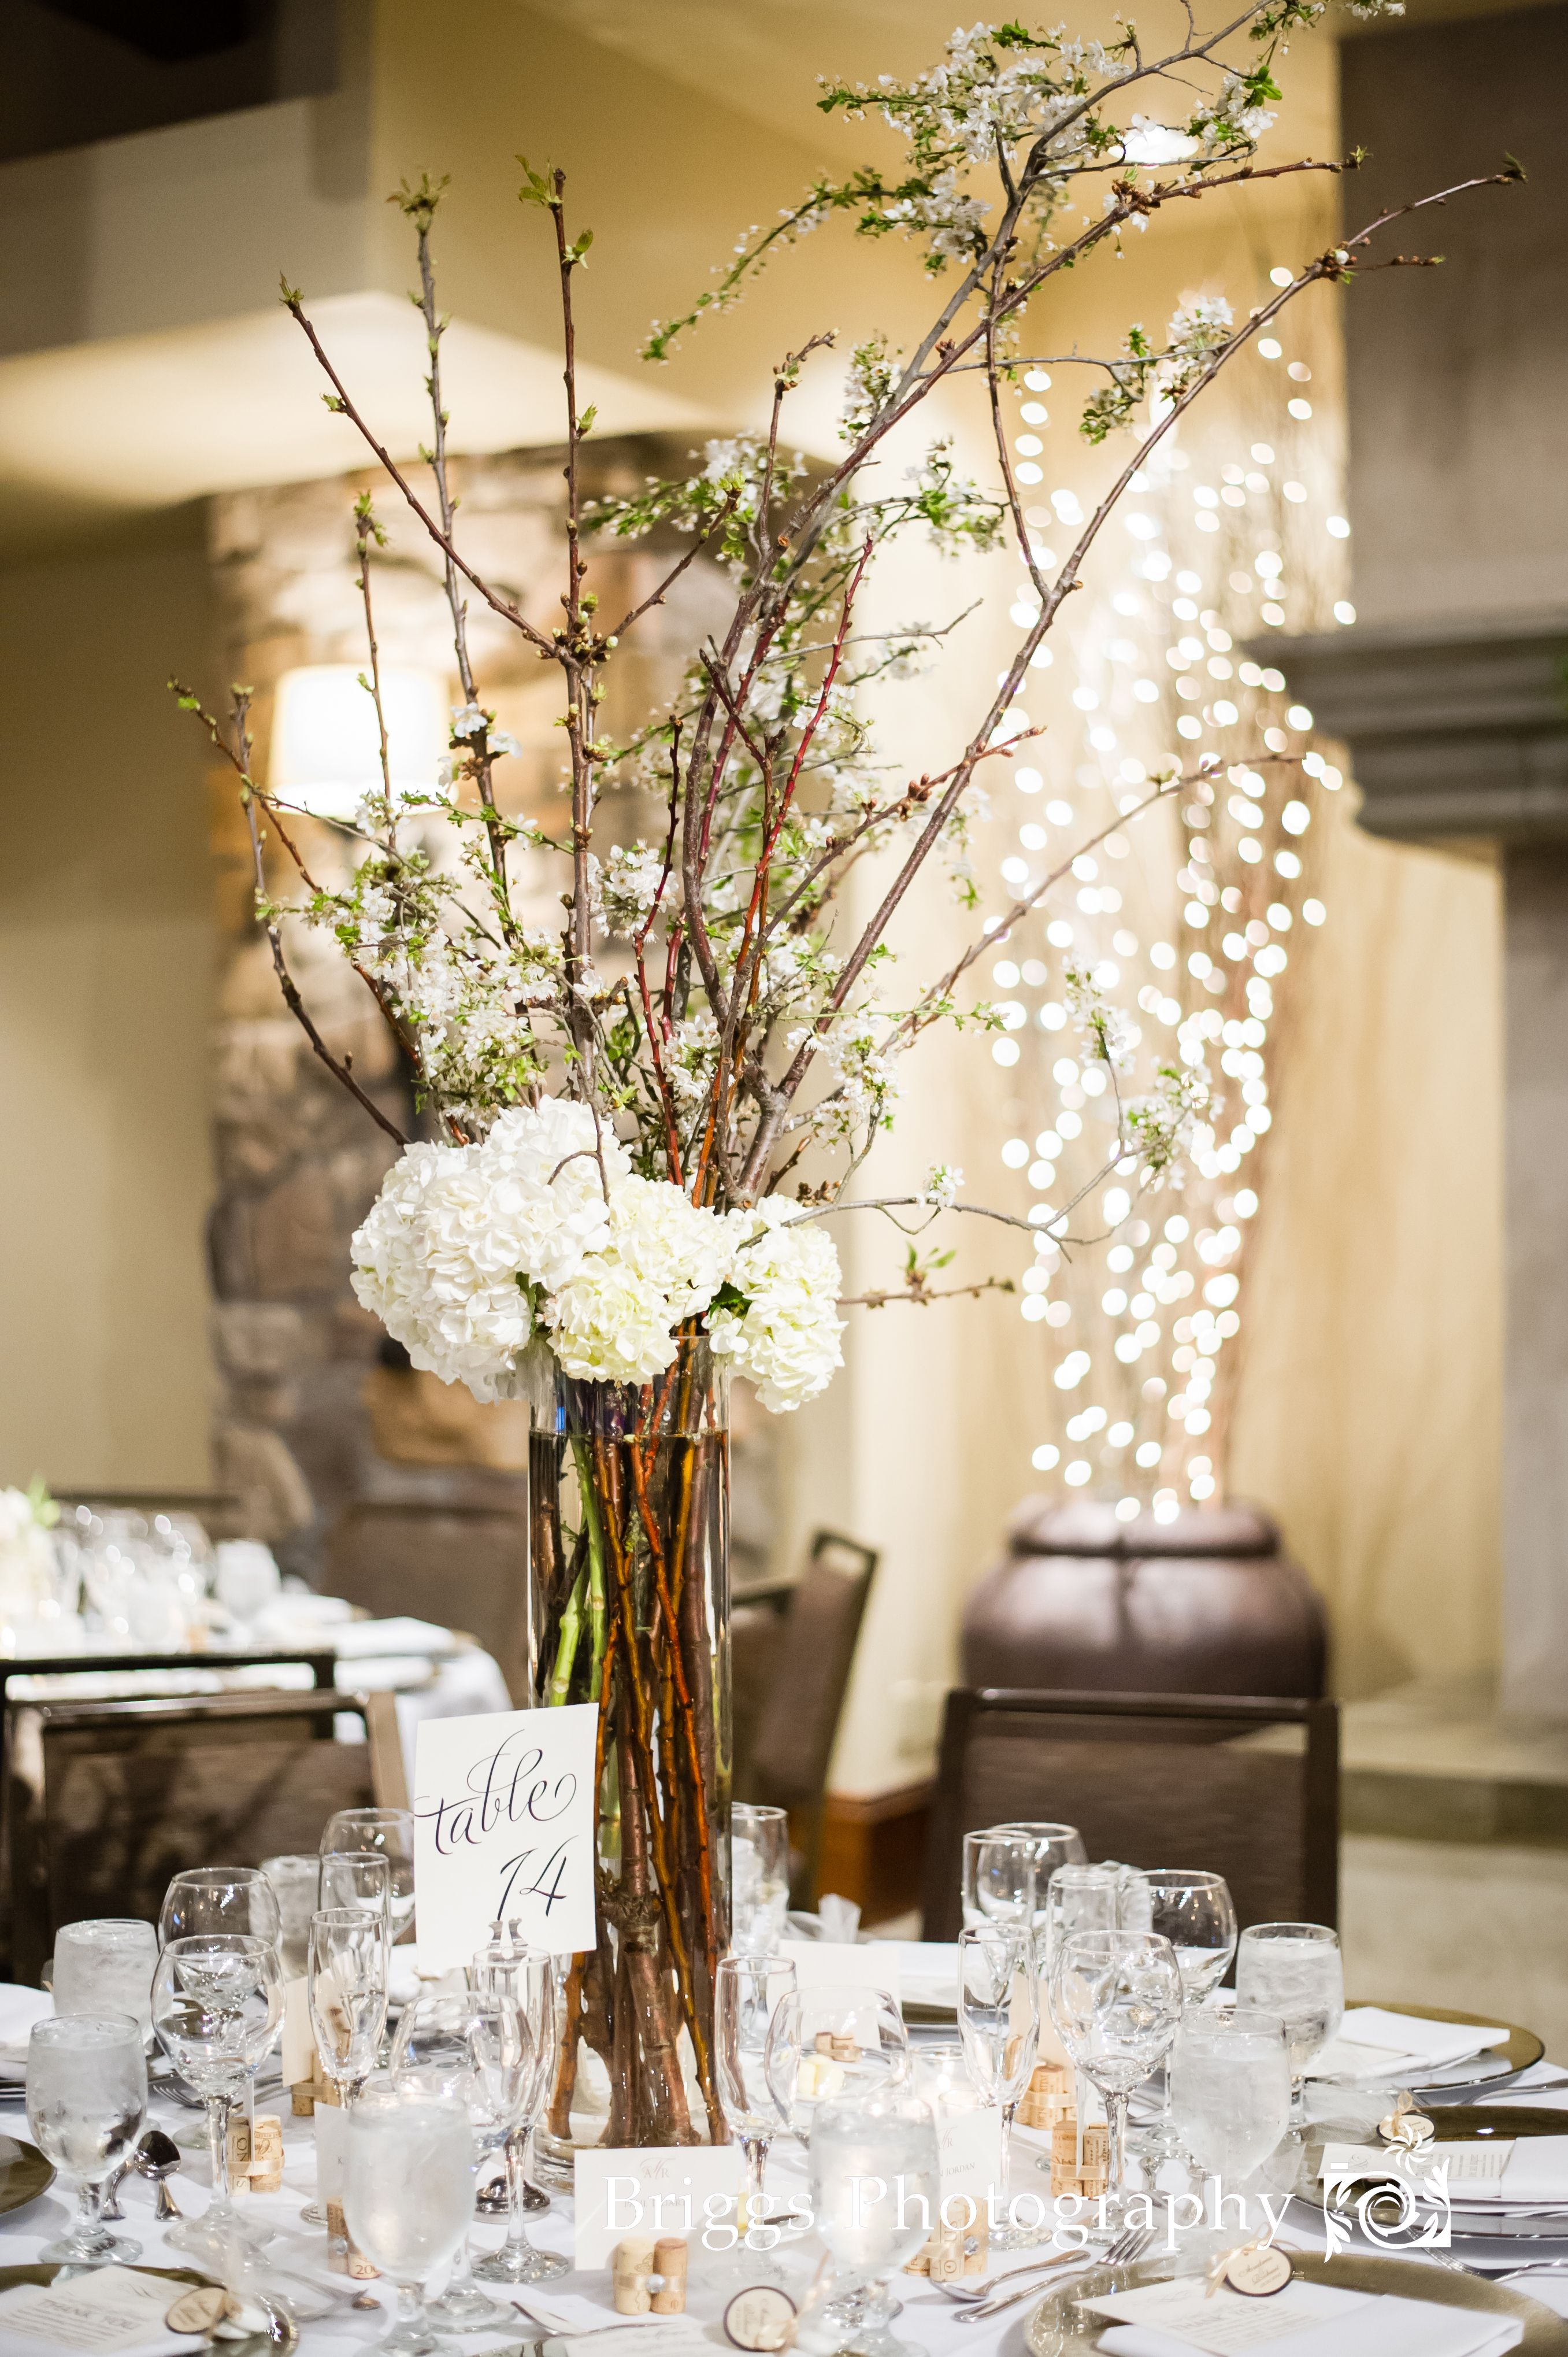 Tall Branches With White Blossoms With Hydrangeas Wedding Table Decorations Table Decorations Fall Wedding